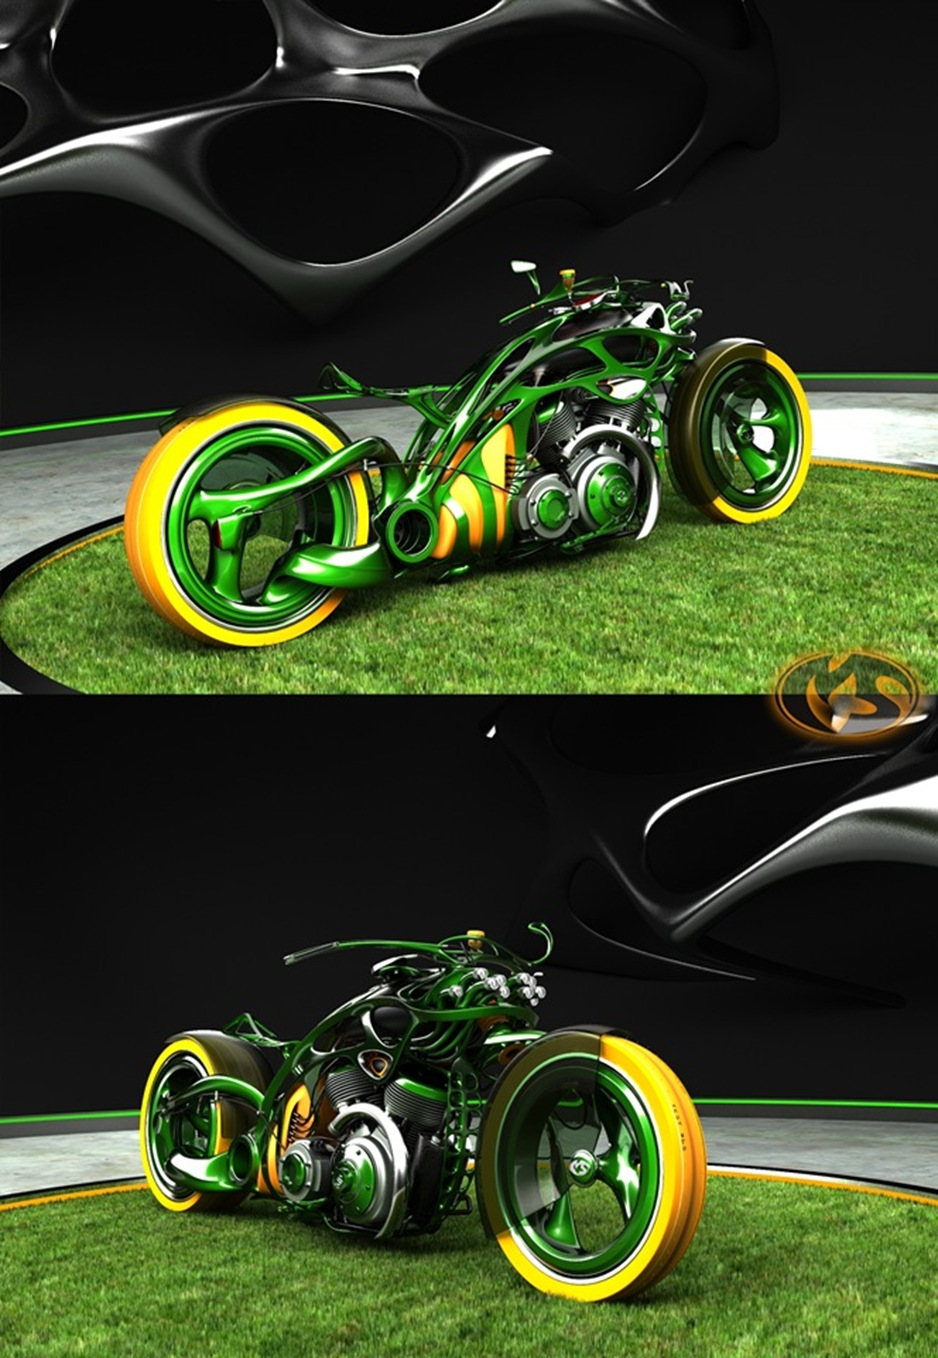 3 15787 thumb1 9 Seriously Sick Sleds by Solif: Creative Custom Choppers